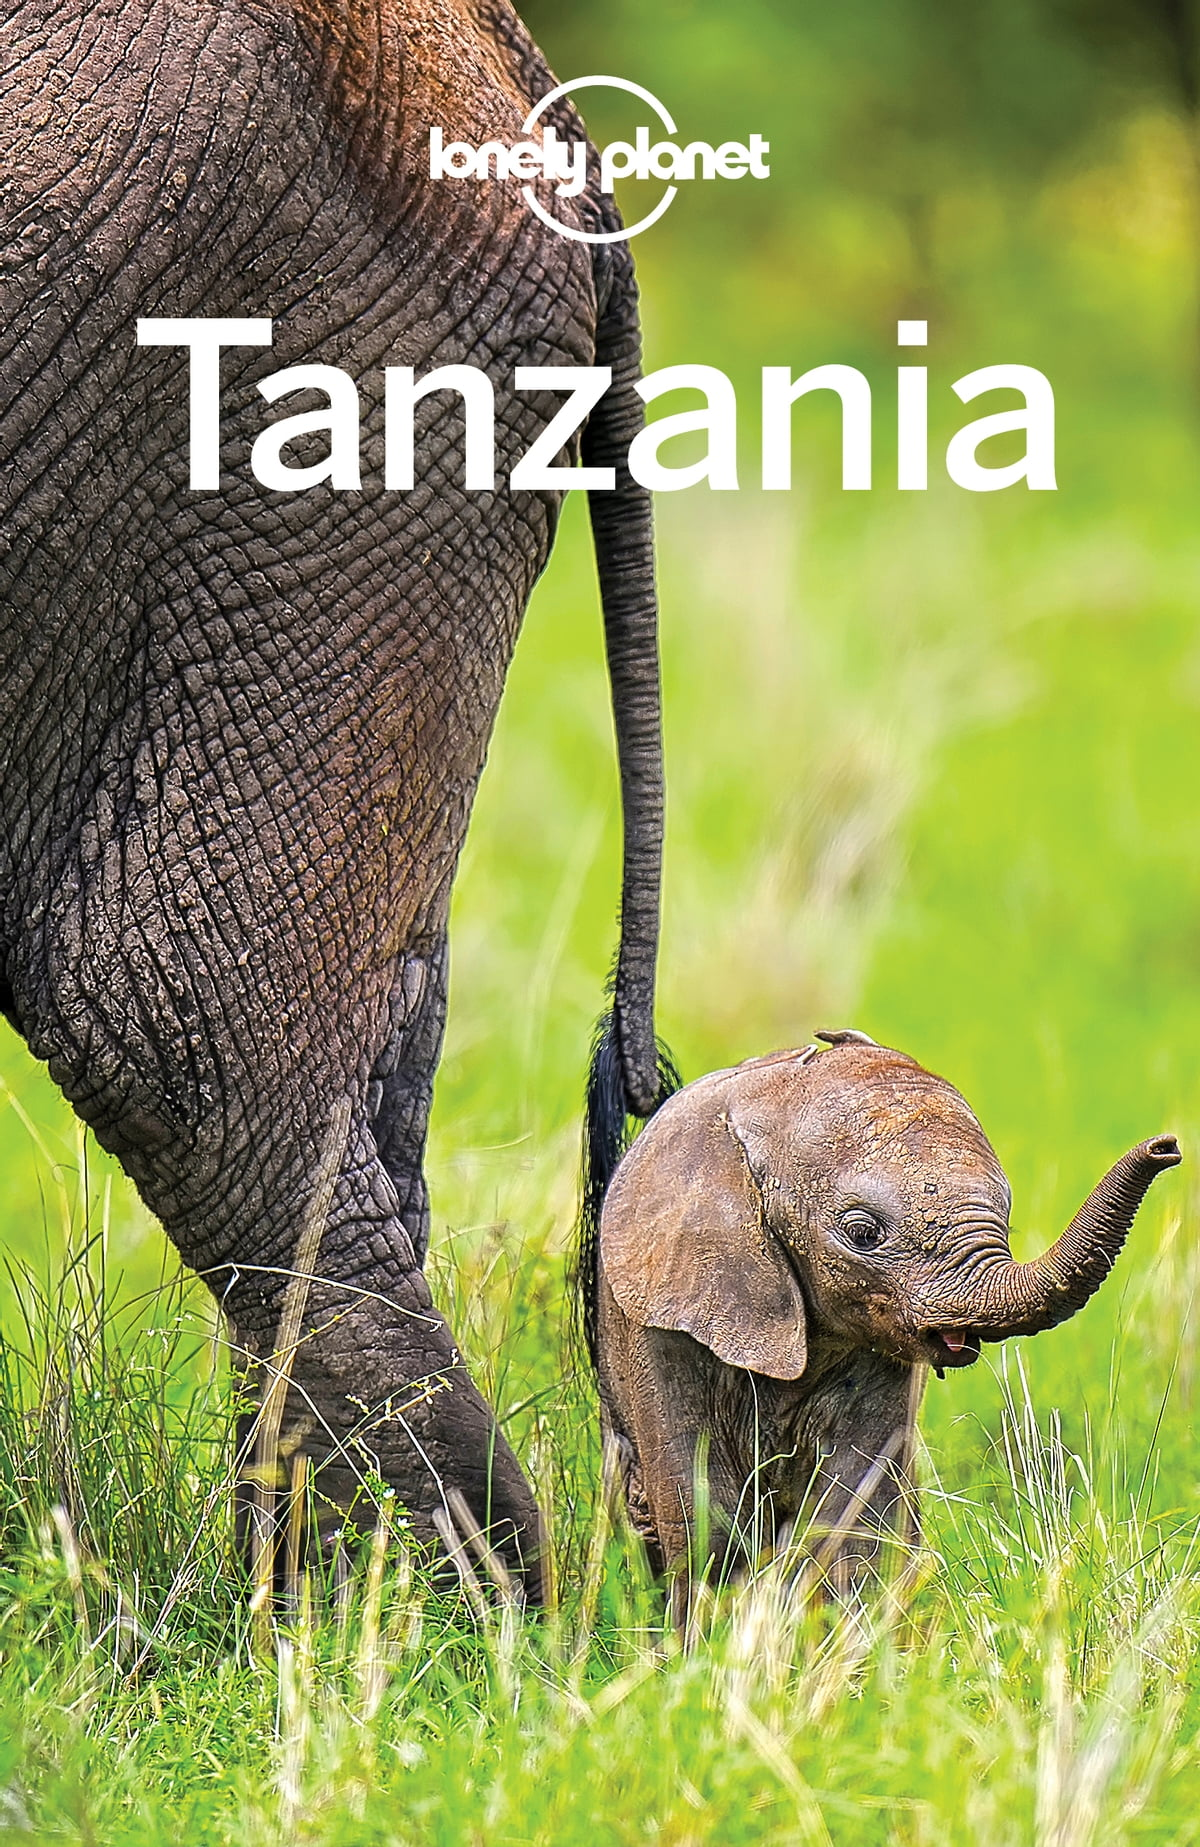 Lonely Planet Tanzania eBook por Lonely Planet - 9781787018990 | Rakuten Kobo